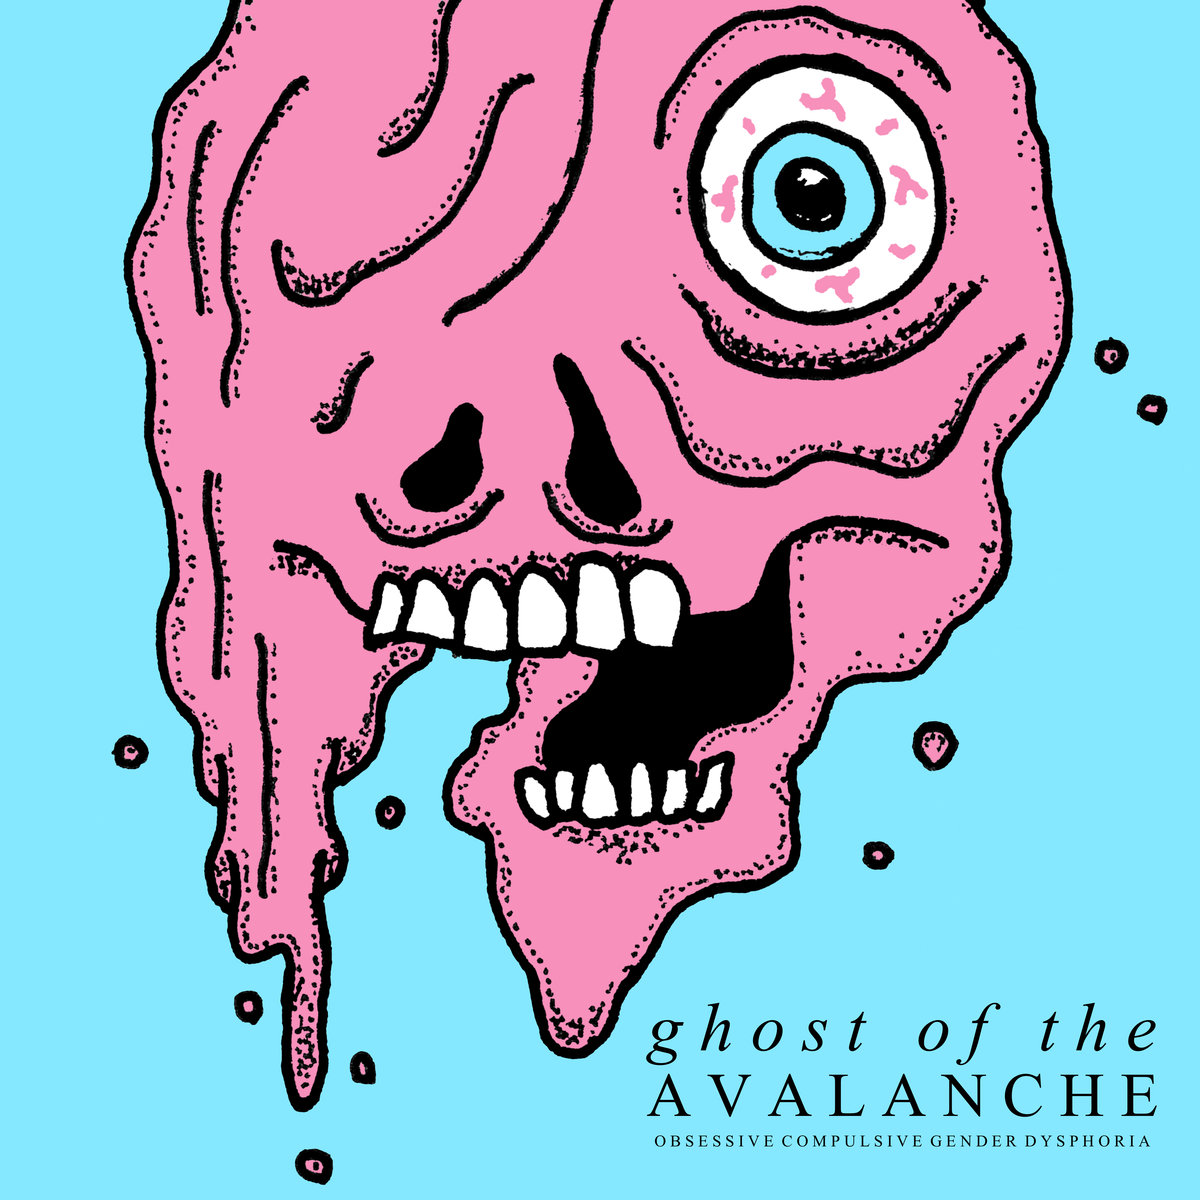 'Obsessive Compulsive Gender Dysphoria Information' by Ghost Of The Avalanche,